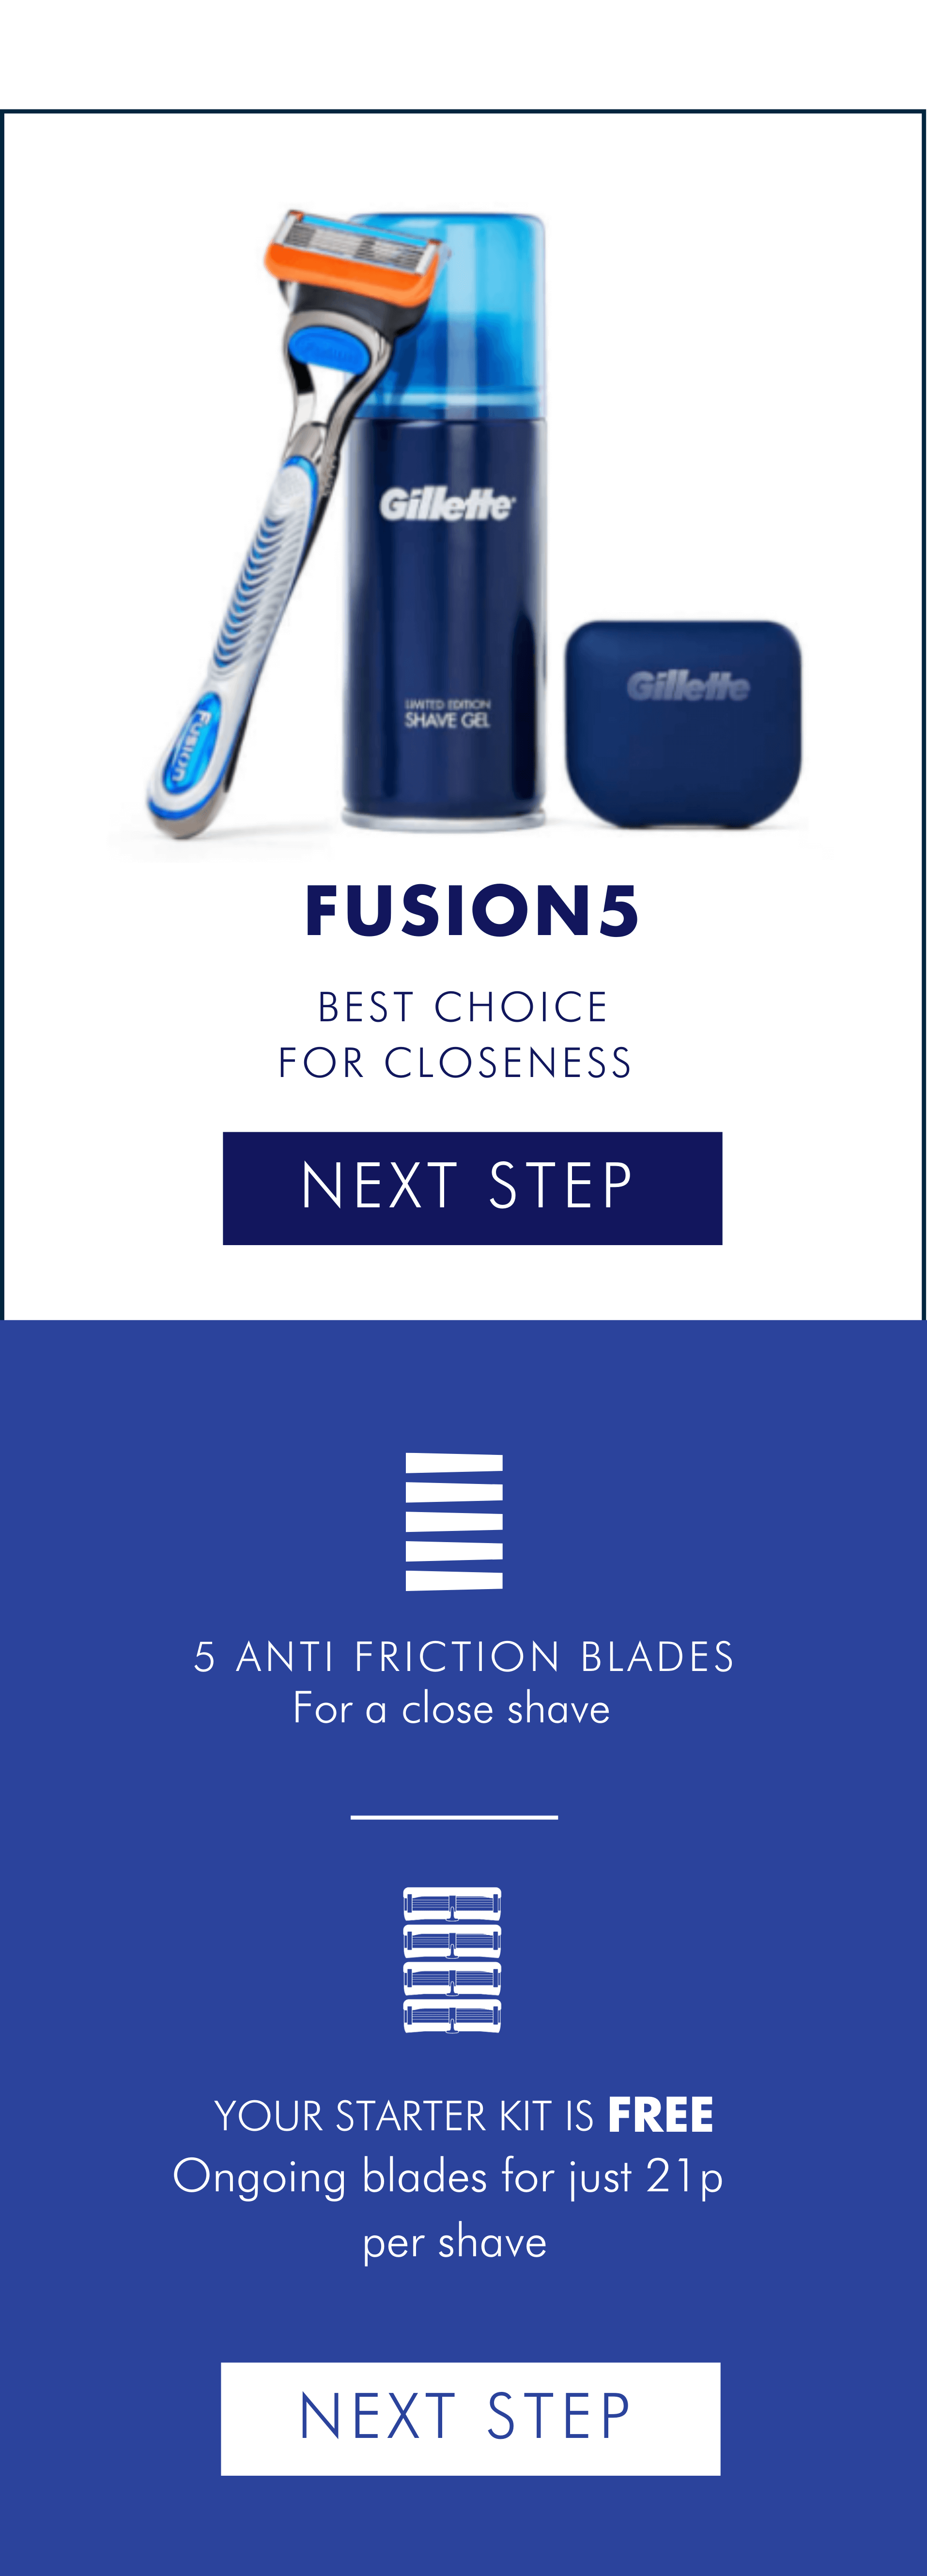 1 FUSION5 RAZOR. 1 GEL. 1 TRAVEL COVER. FOR THOSE LOOKING FOR CLOSENESS ONLY. 5 BLADES FOR A VERY CLOSE SHAVE. 2 LUBRICATION.